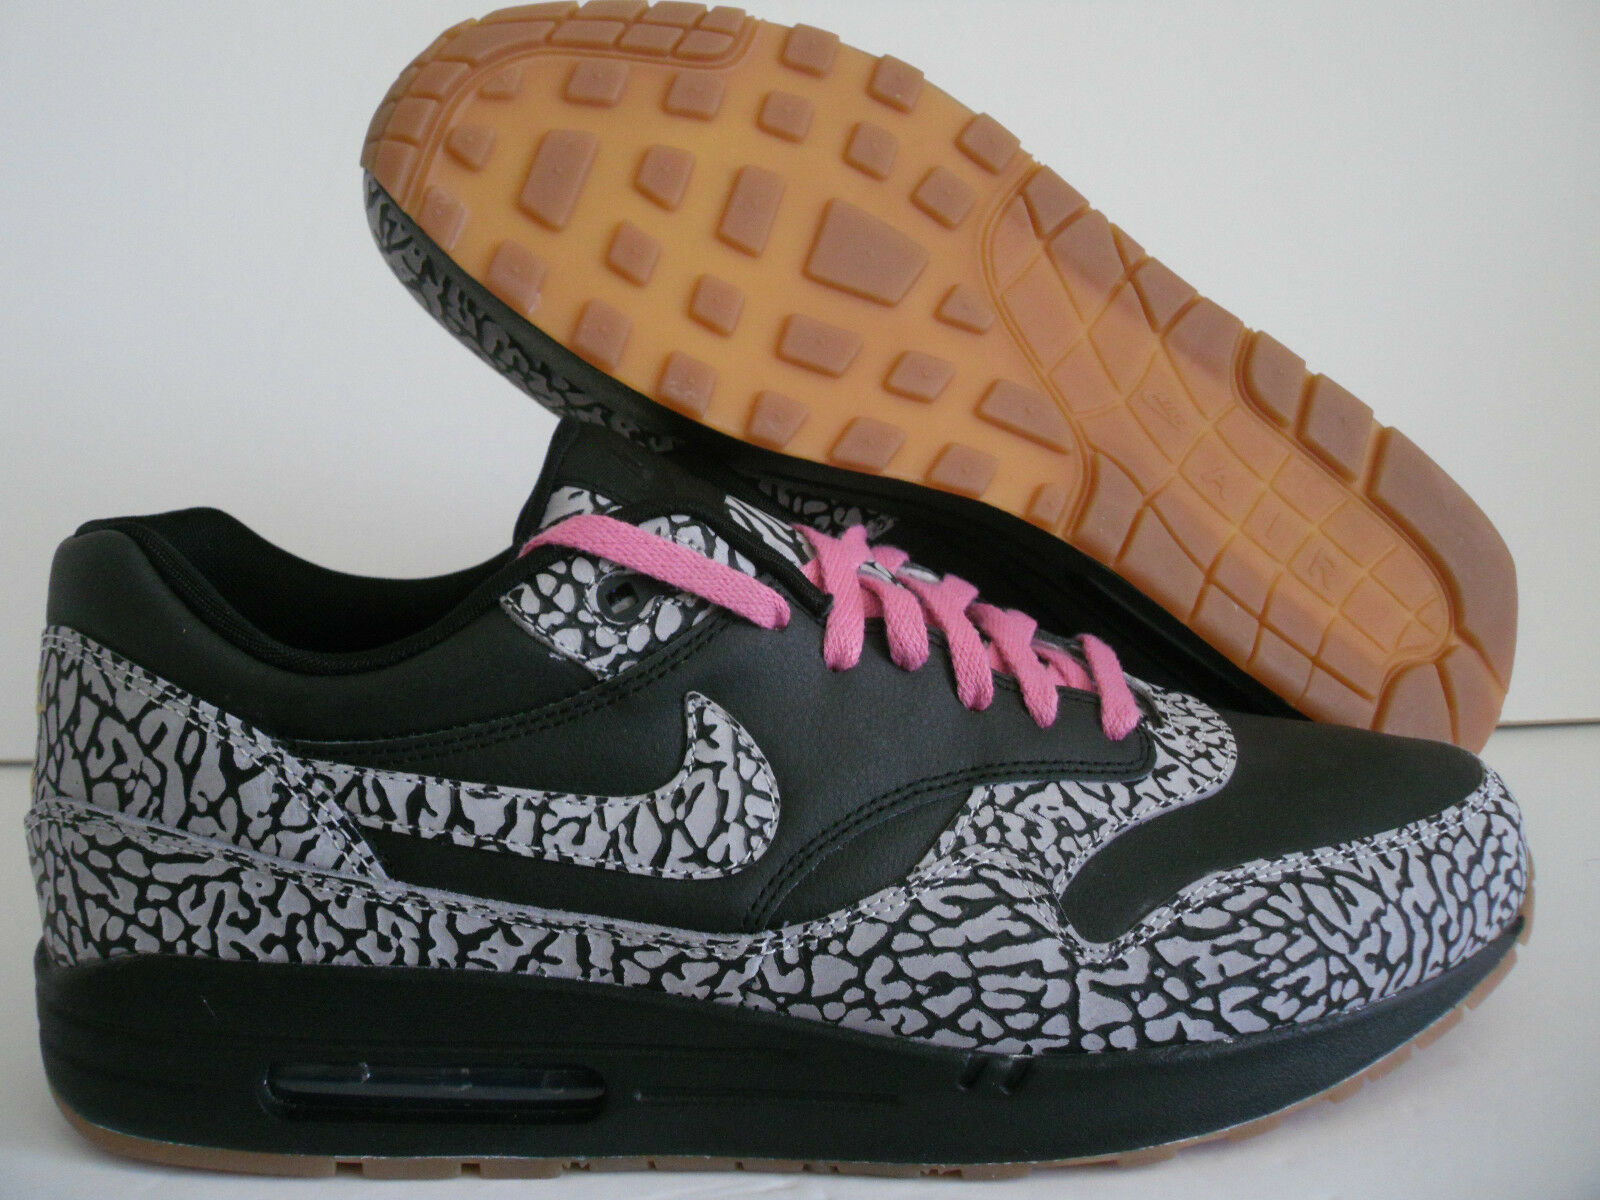 NIKE AIR MAX 1 iD BLACK-CEMENT GREY-PINK SUPREME ELEPHANT SZ 13 [628312-991]